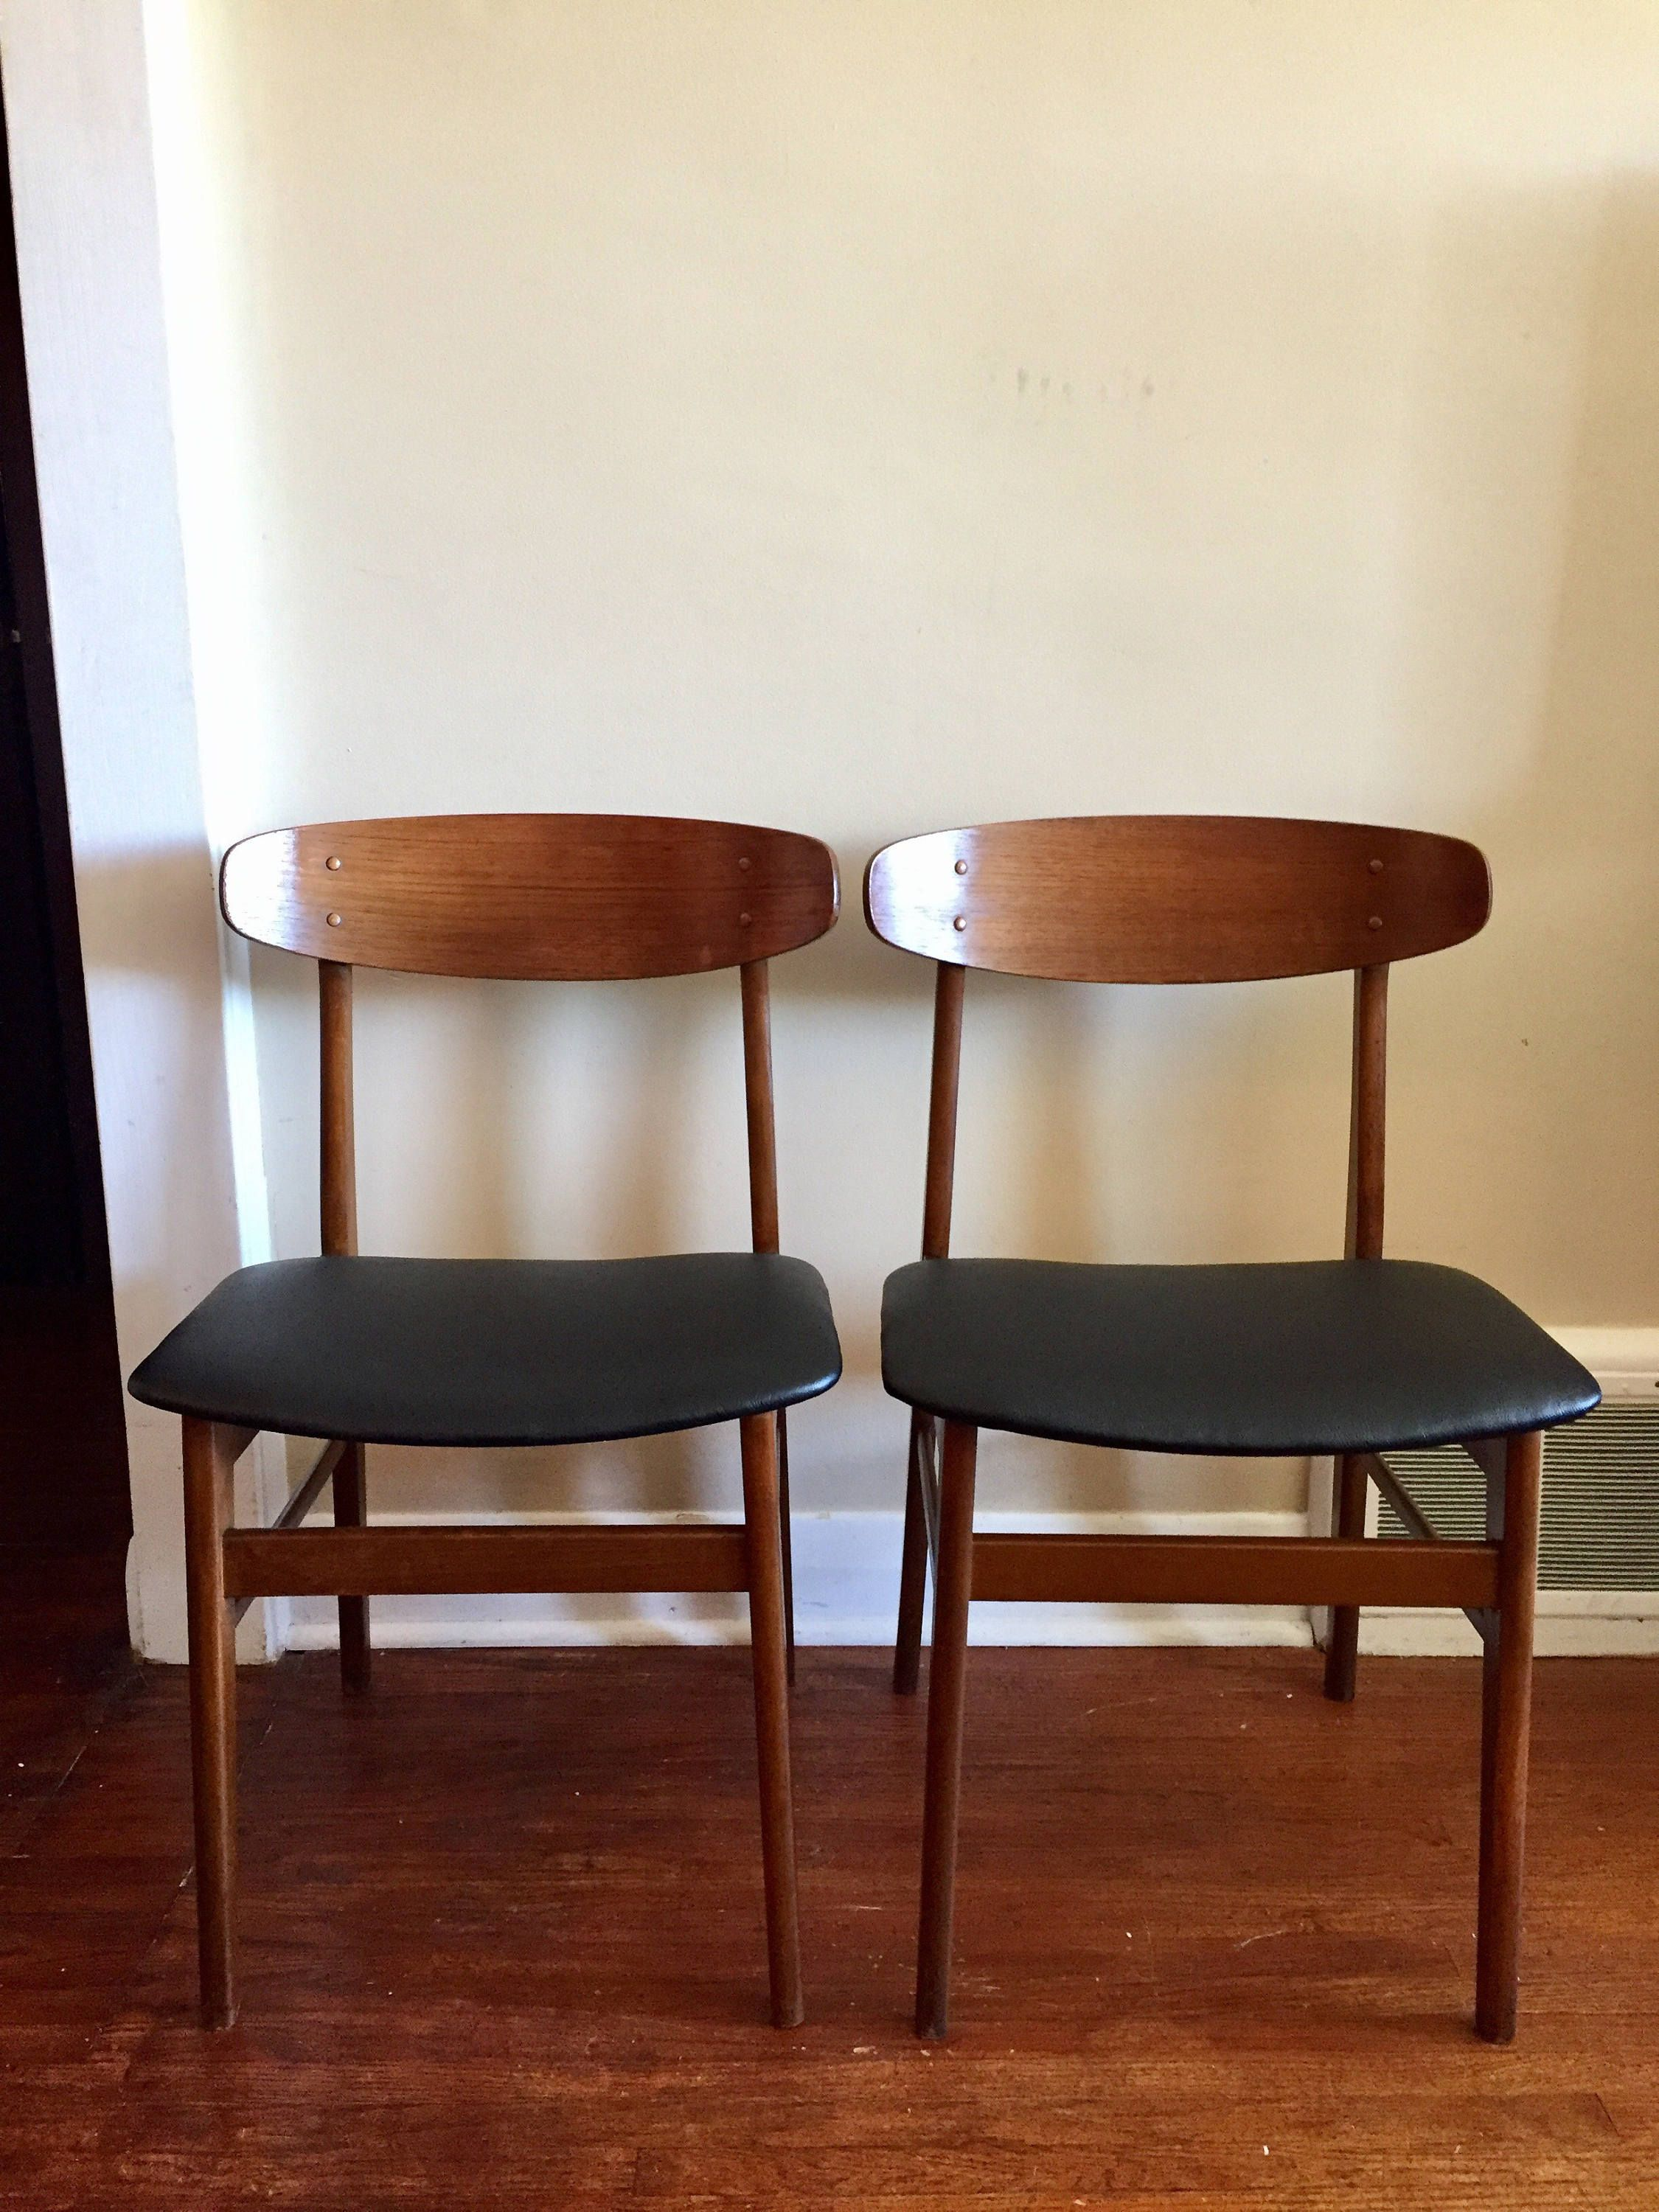 Mid Century Modern Danish Teak Dining Chairs By Sax A Pair Of V Mid Century Modern Teak Furniture Midcentury Modern Dining Chairs Dining Room Furniture Modern